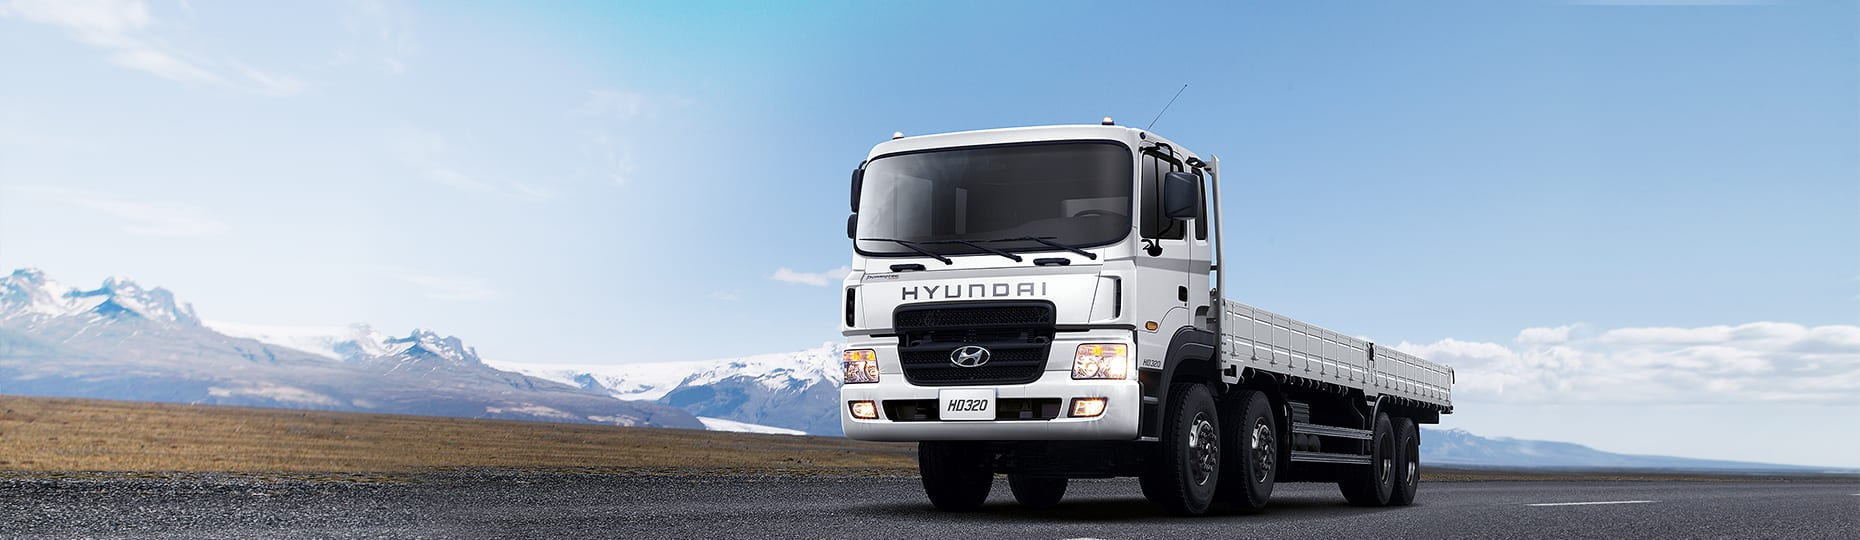 accent se used new sk trucks cars hyundai in jaw moose suvs